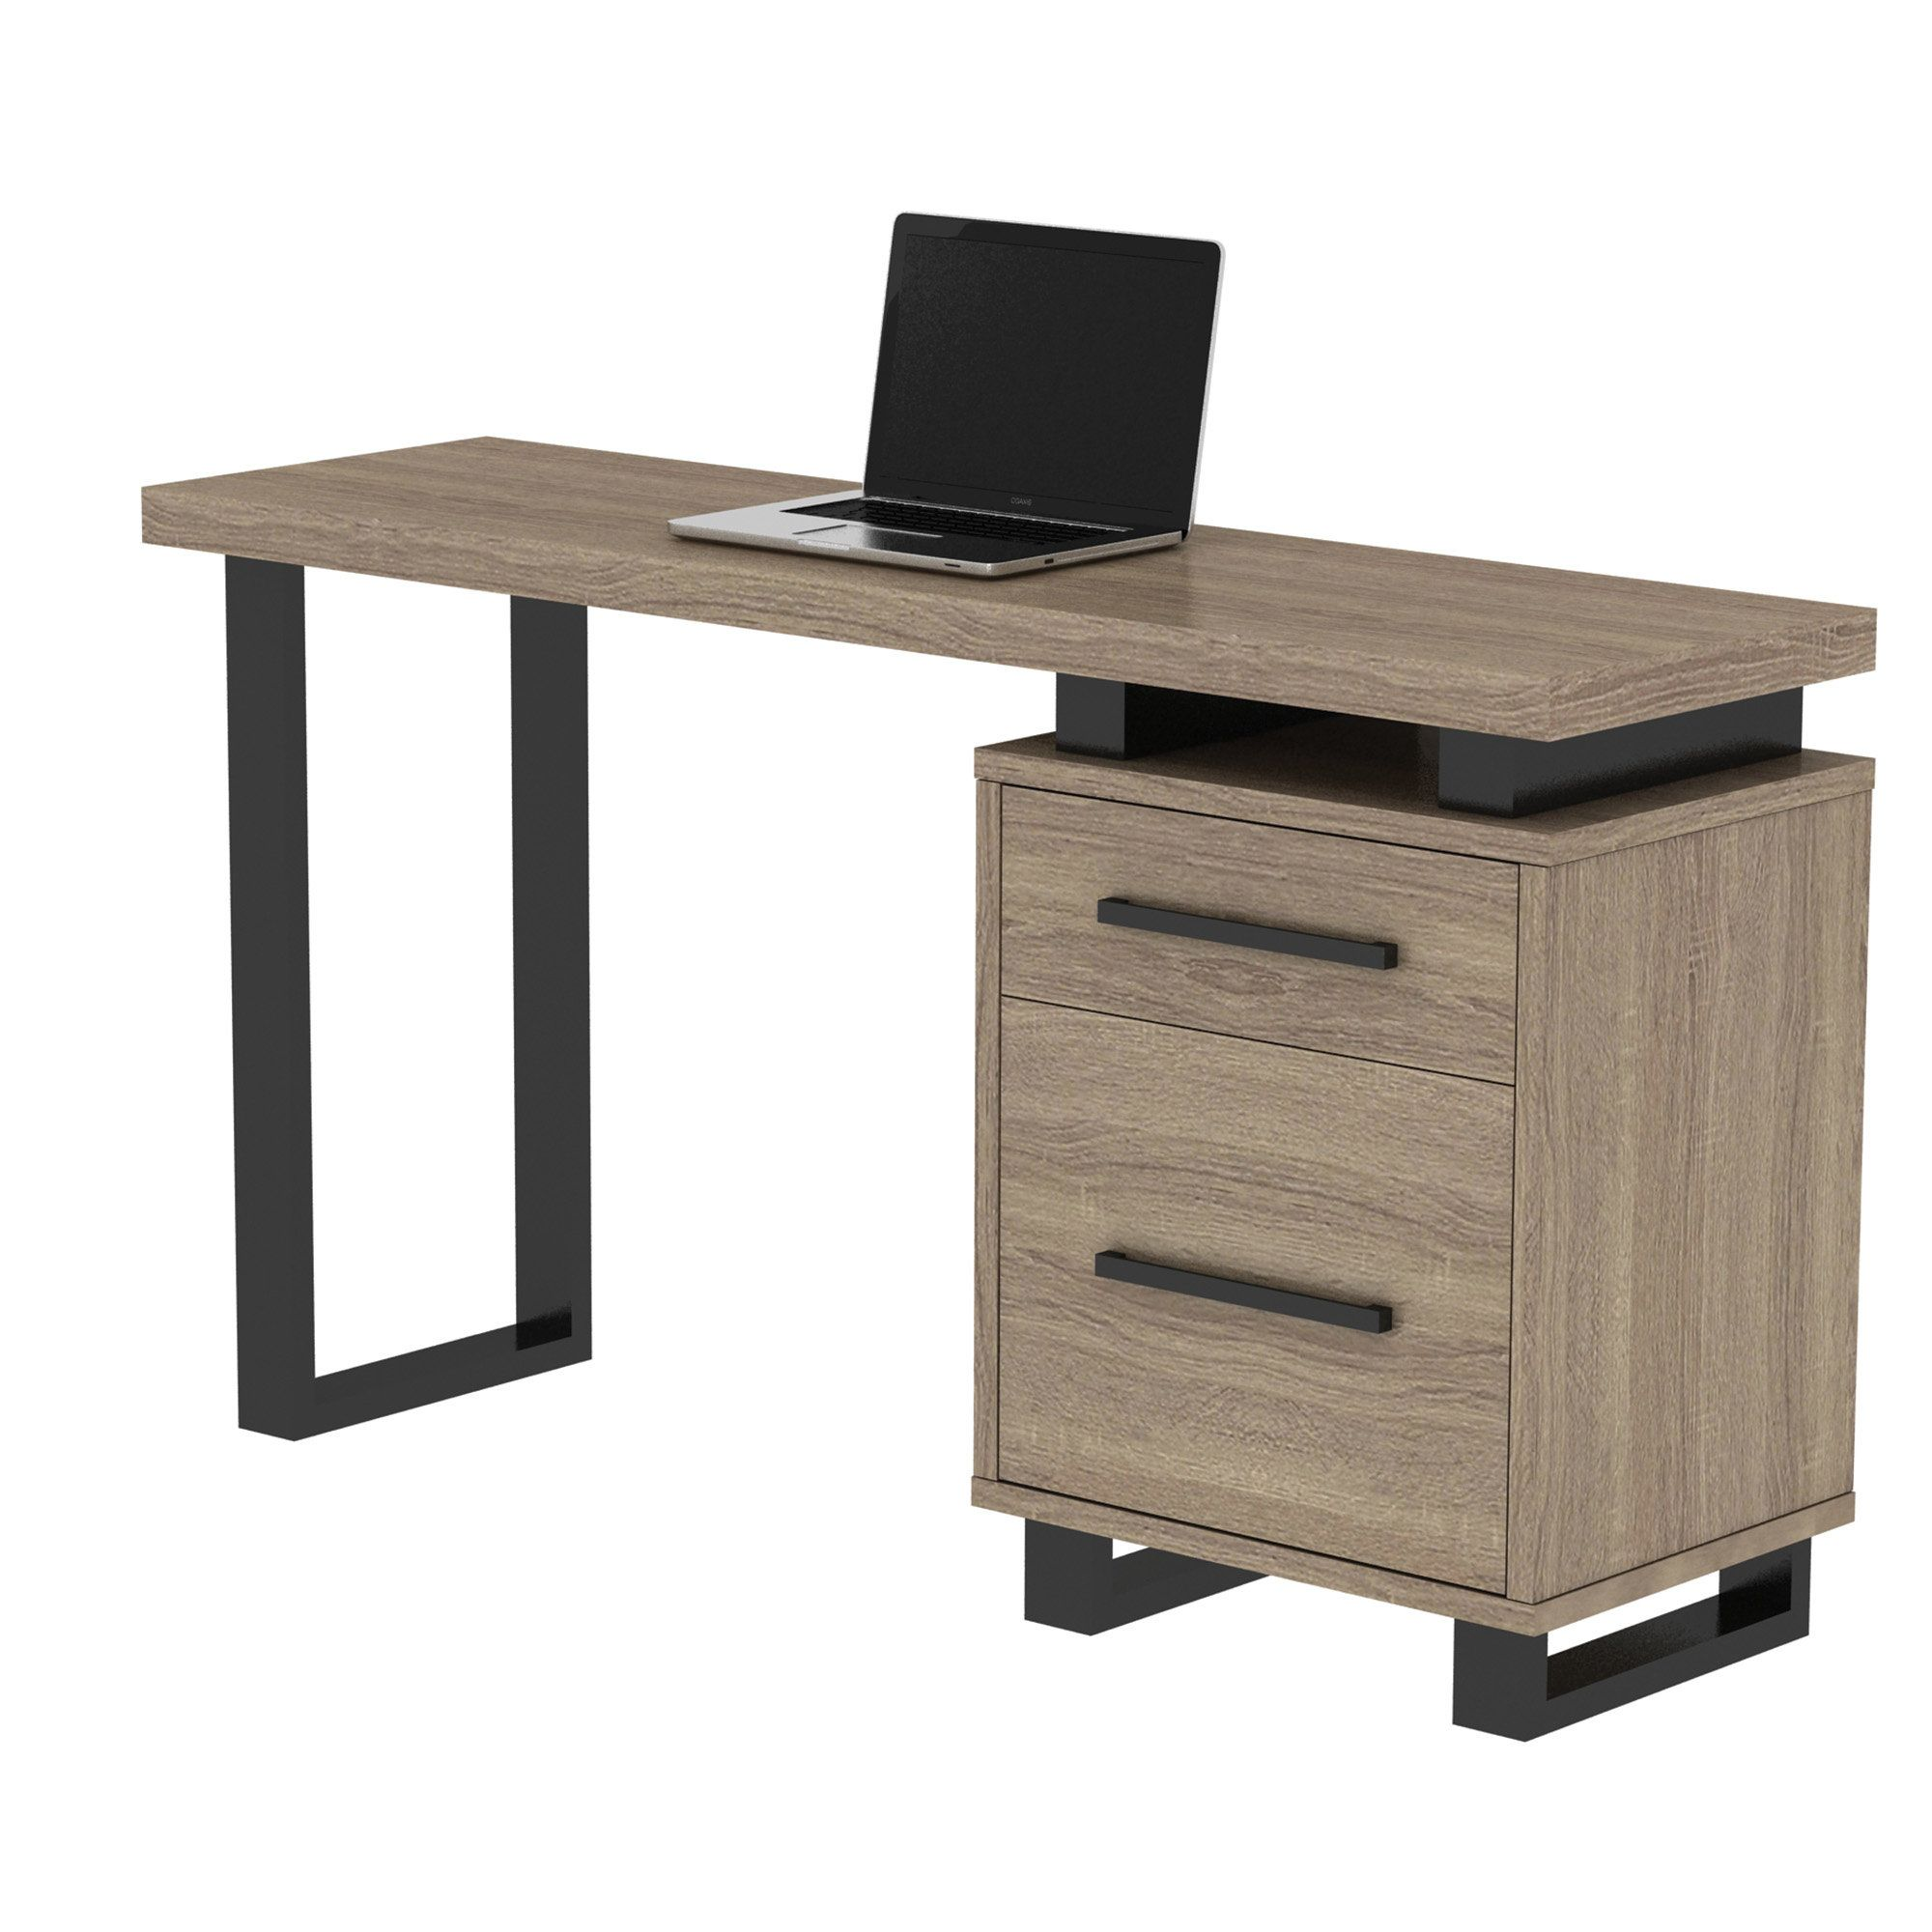 Galey executive desk products pinterest desks and products